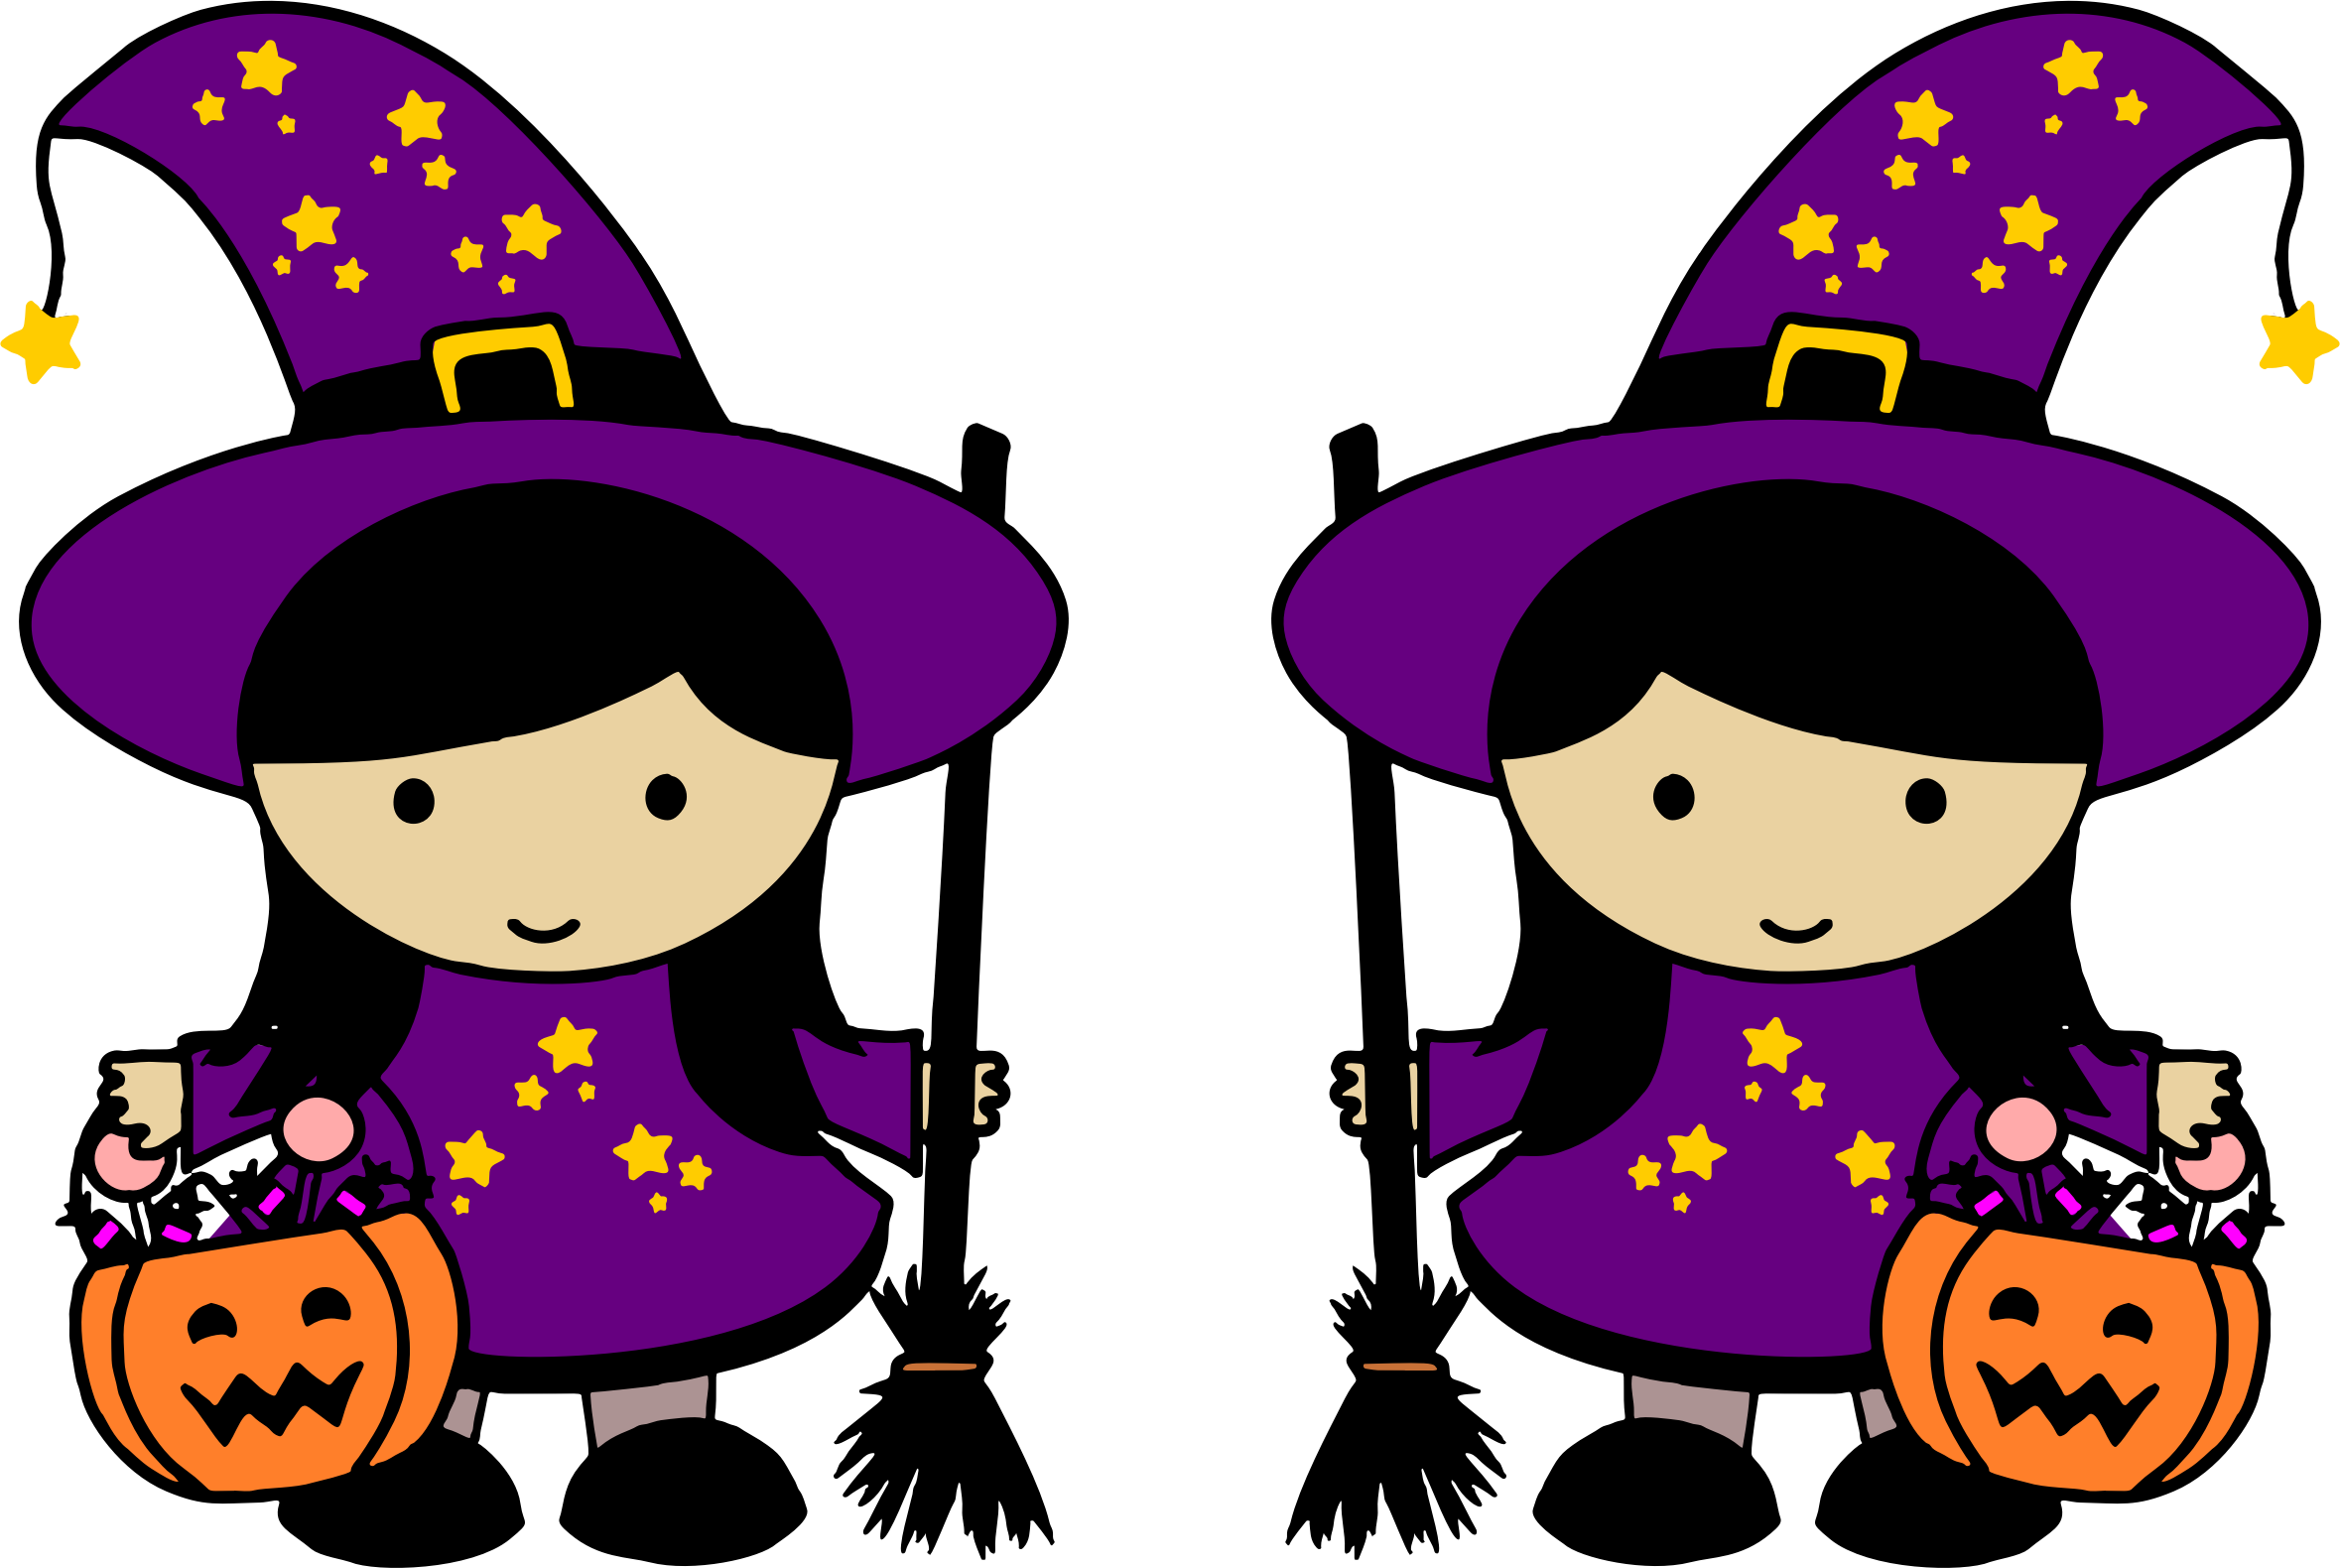 Witch clipart witchcraft, Witch witchcraft Transparent FREE.